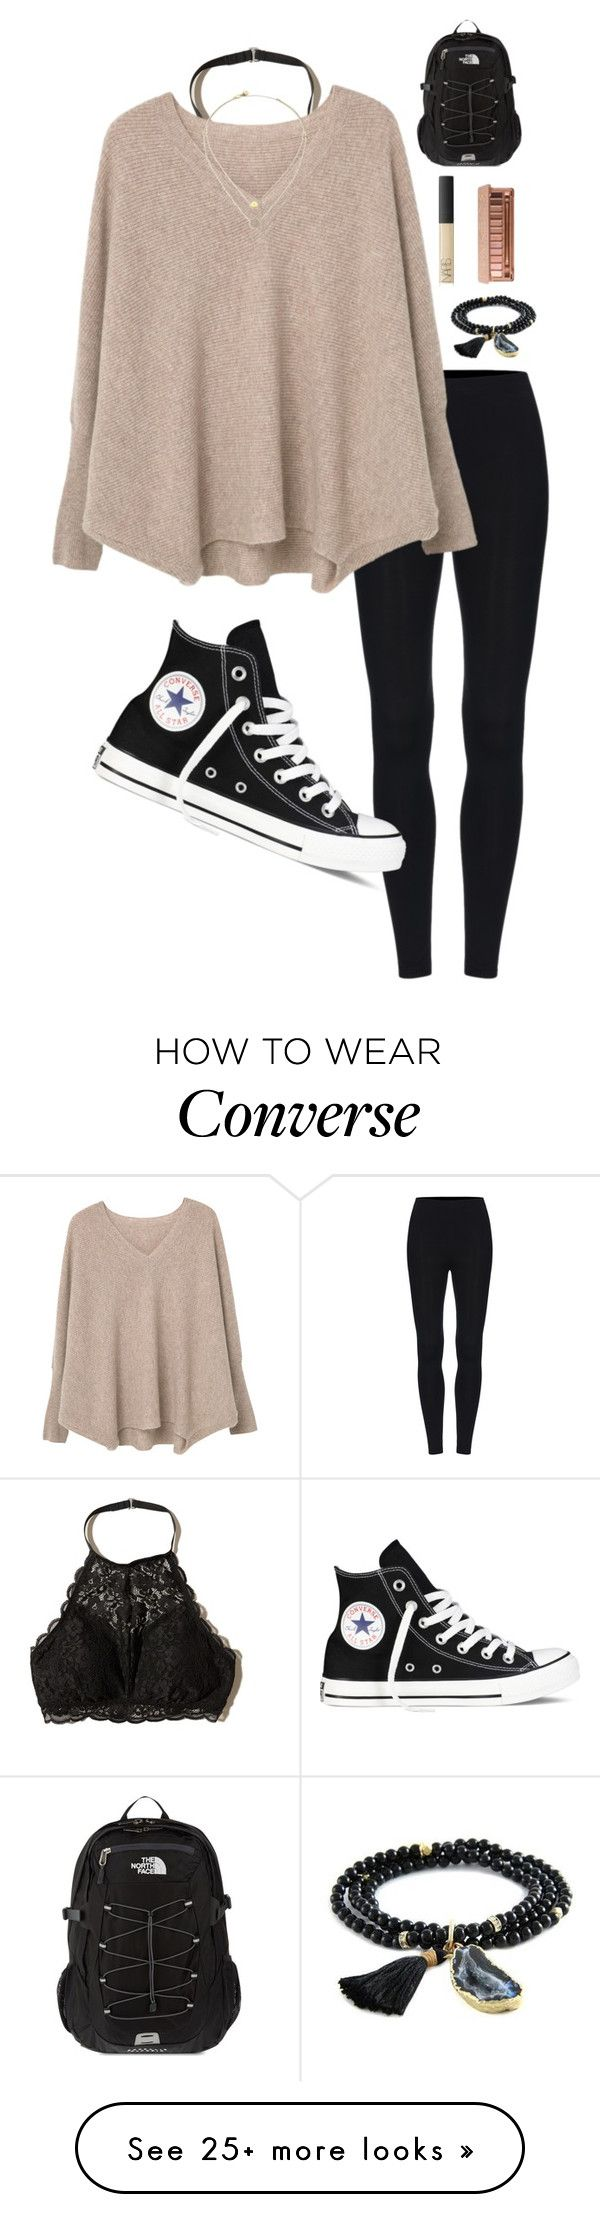 """""""Honestly I love thursdays idk why lol"""" by giannavozzella on Polyvore featuring Hollister Co., MANGO, Michael Kors, Converse, Ettika, NARS Cosmetics, Urban Decay and The North Face"""